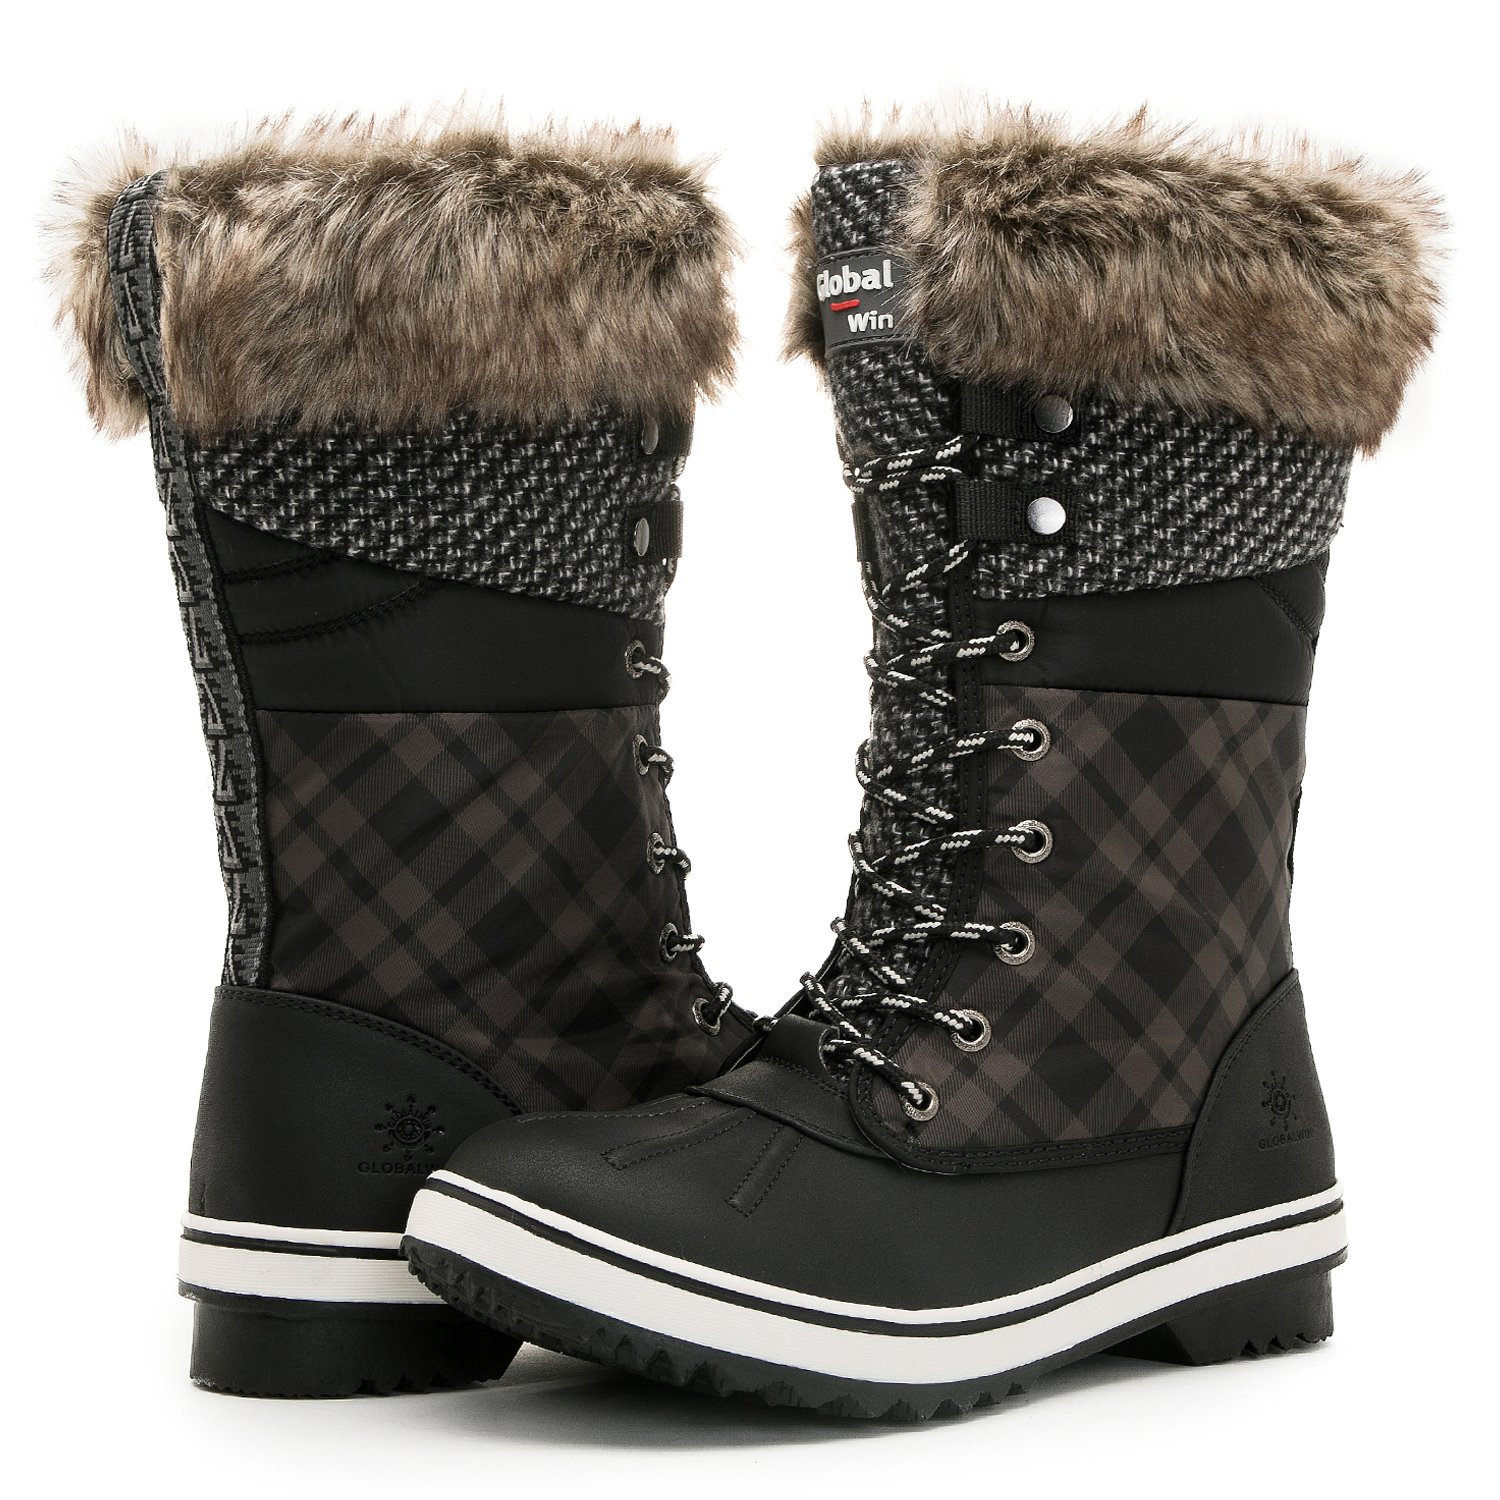 Top 10 Comfy Snow Stiefel for Damens Winter Best Winter Damens Stiefel 2018 2019 on ... e3357d